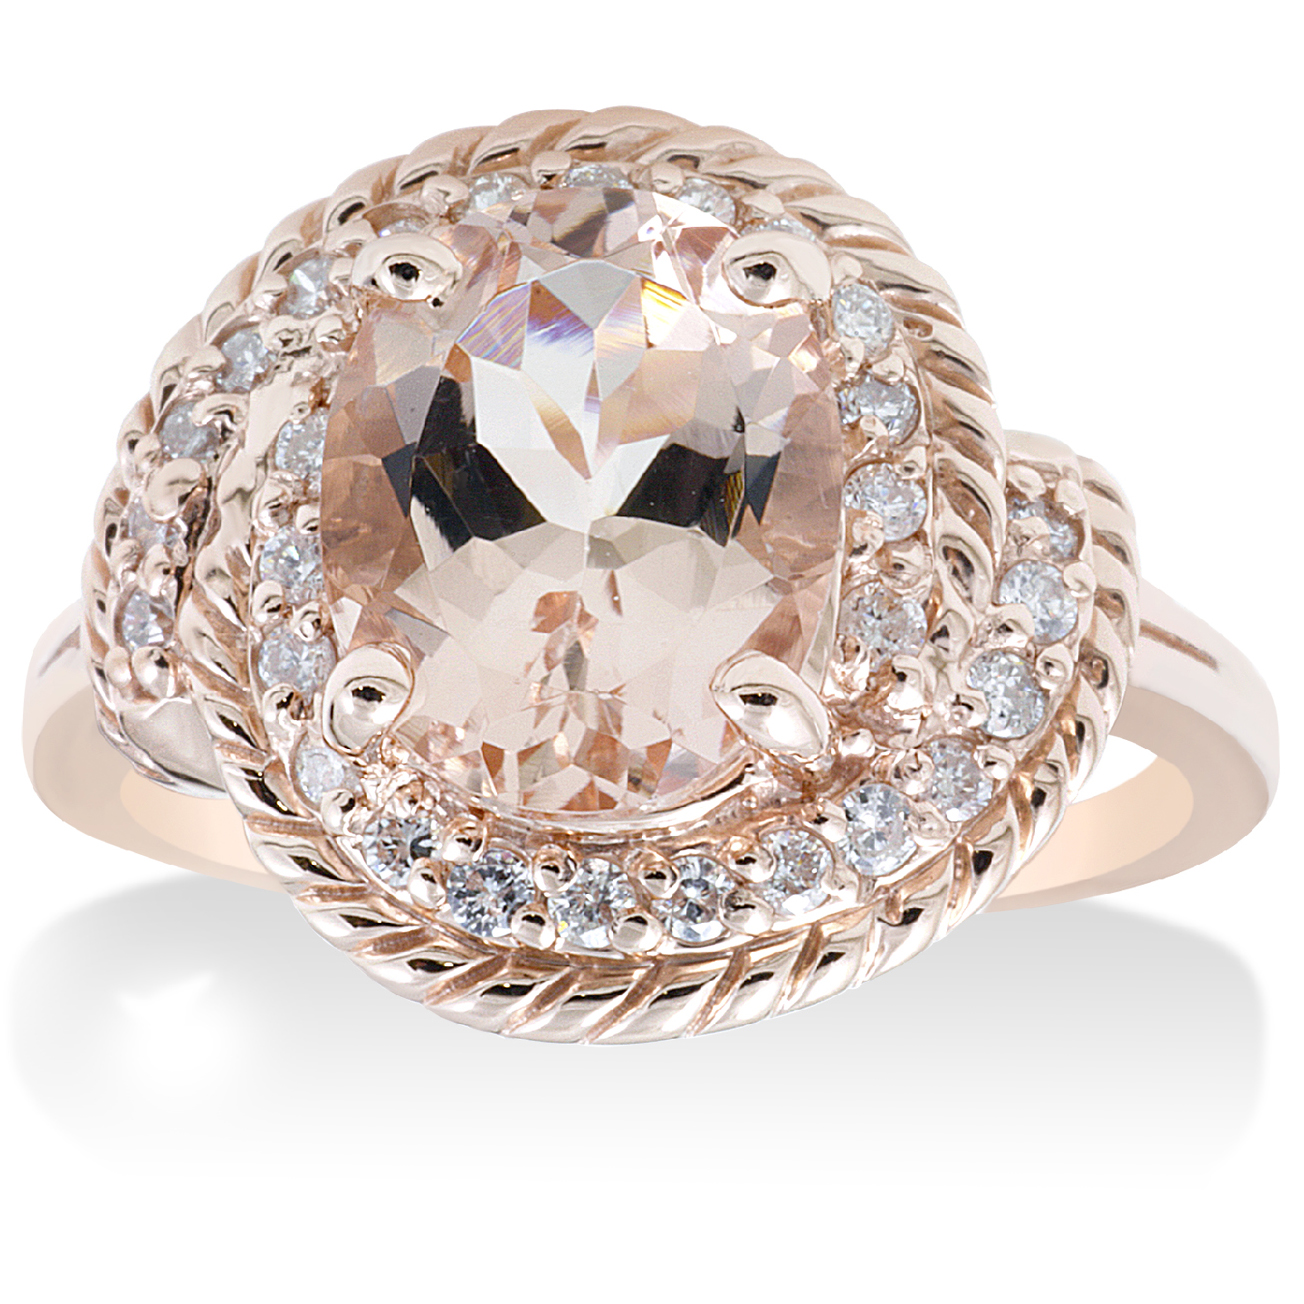 1 3/4ct Morganite Diamond Vintage Halo Engagement Anniversary Ring 14K Rose Gold